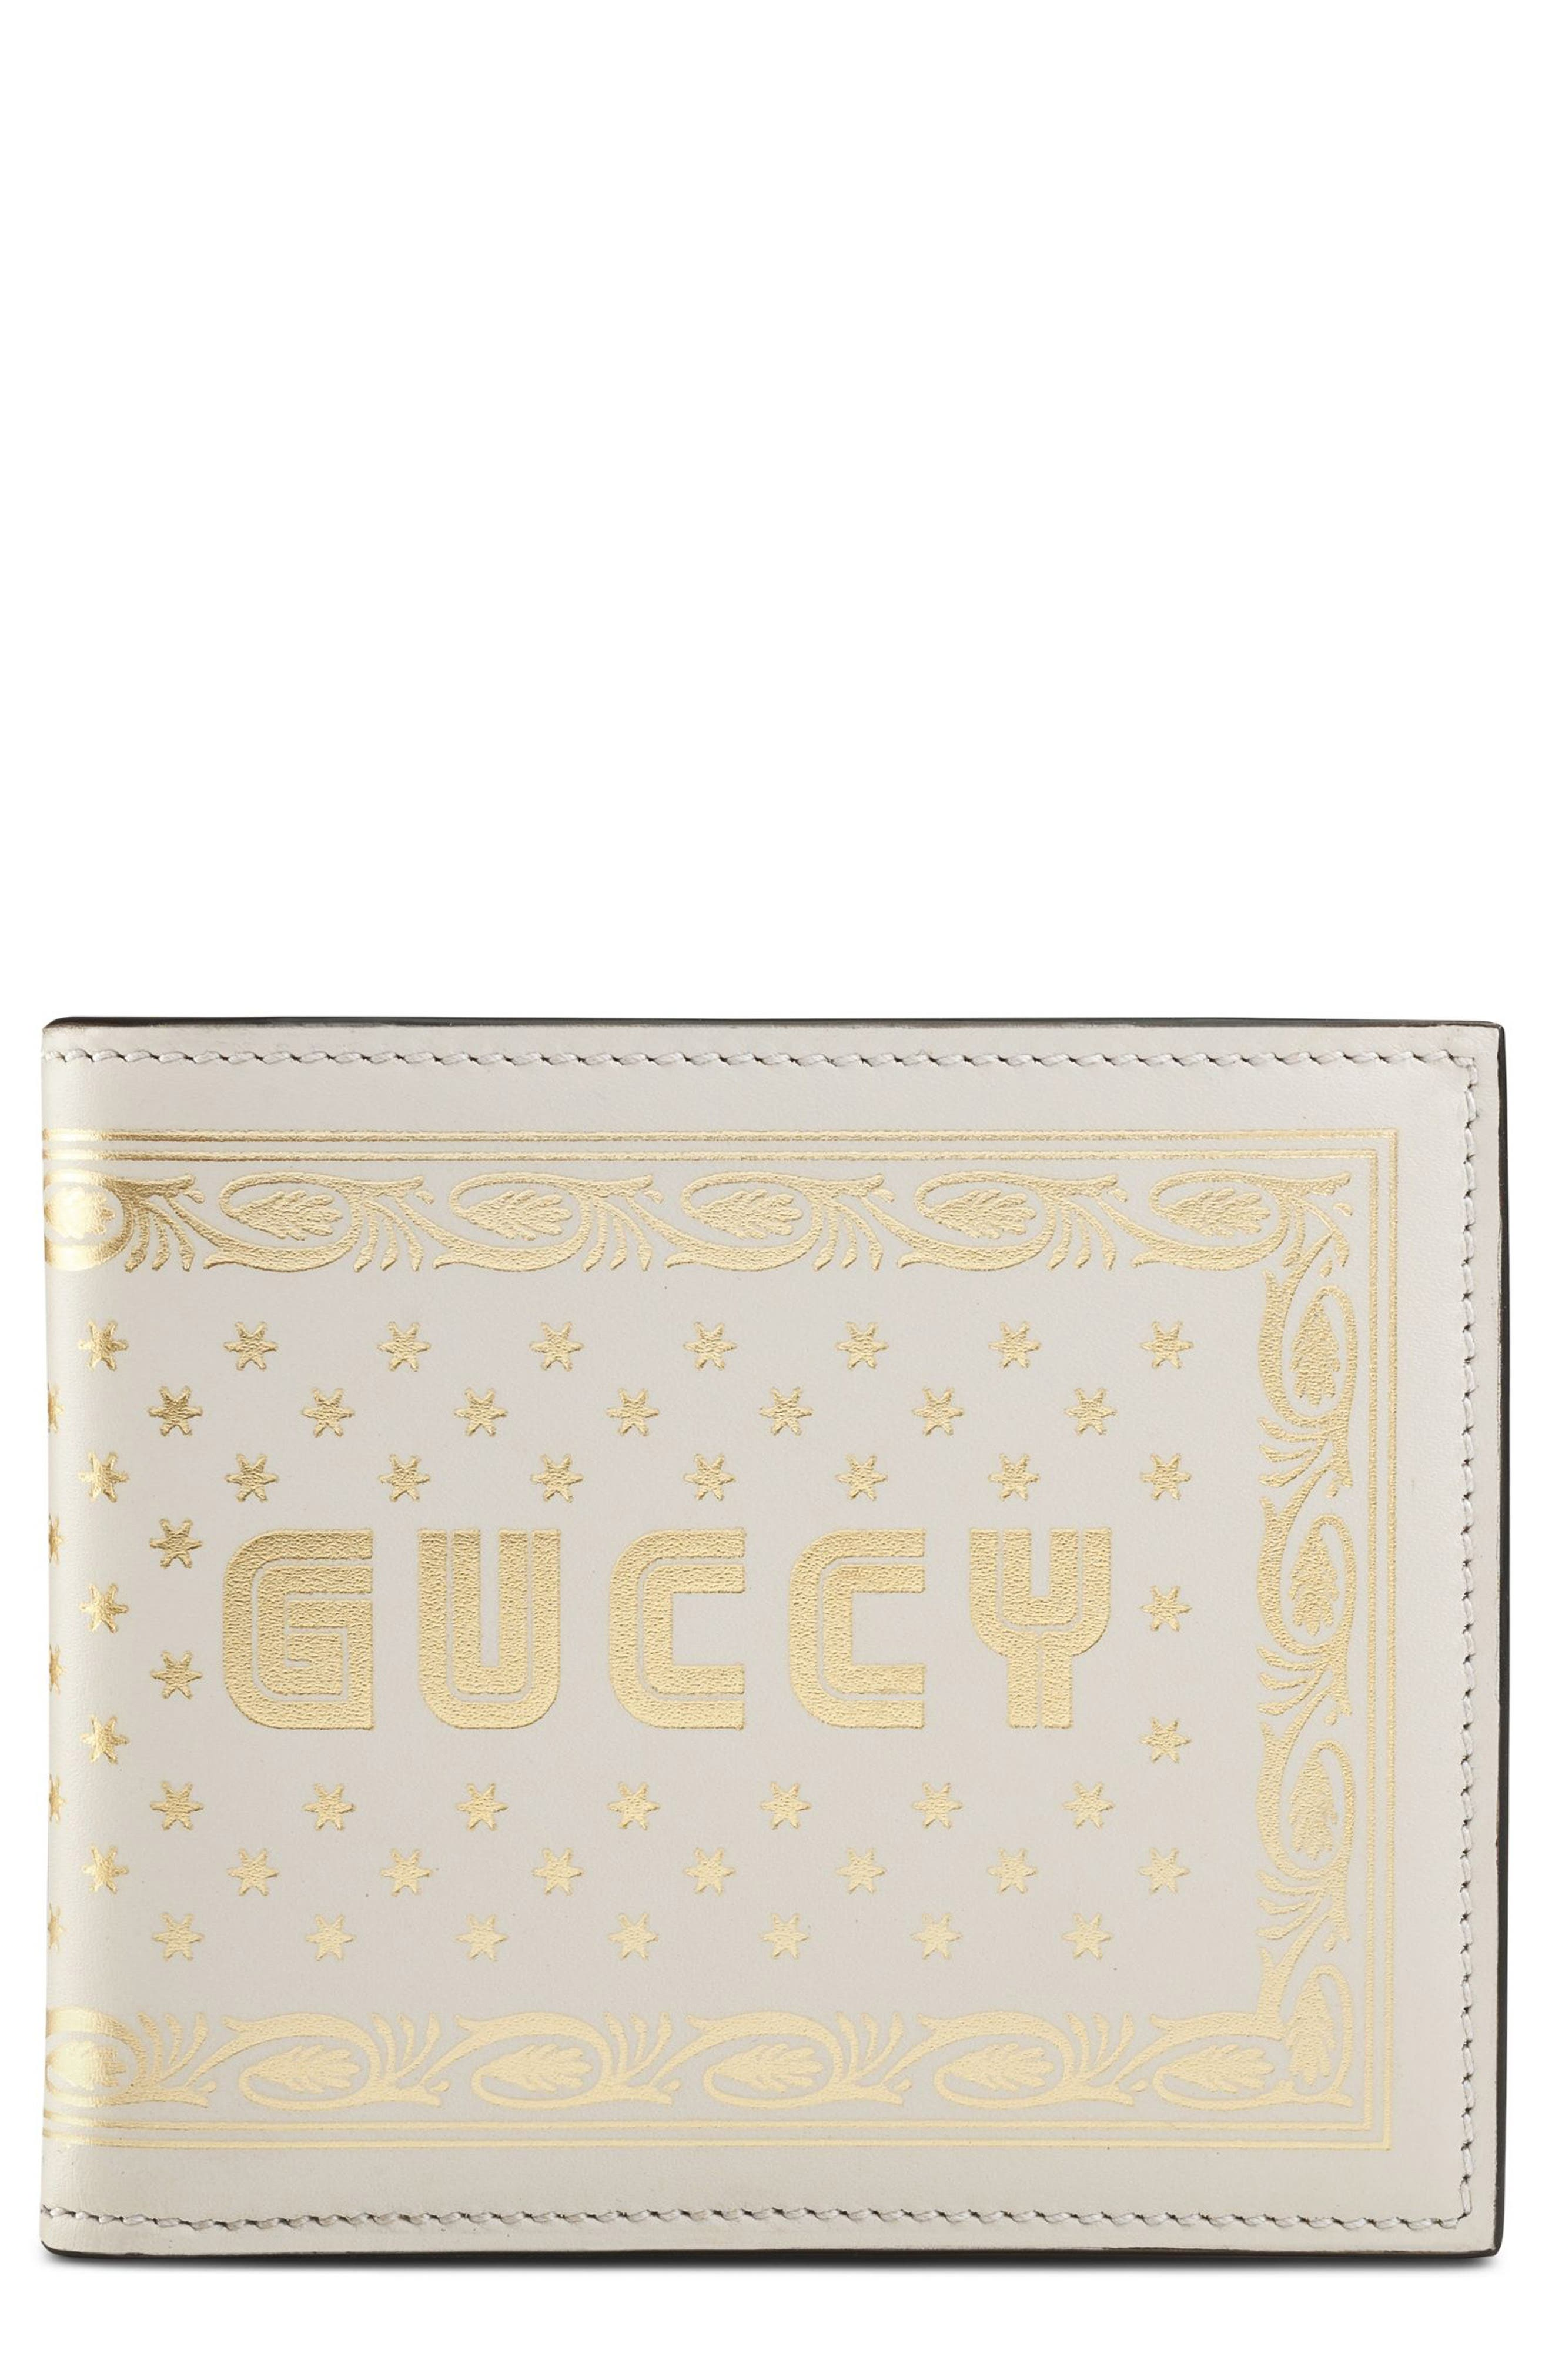 Guccy Print Leather Wallet,                             Main thumbnail 1, color,                             White/ Gold